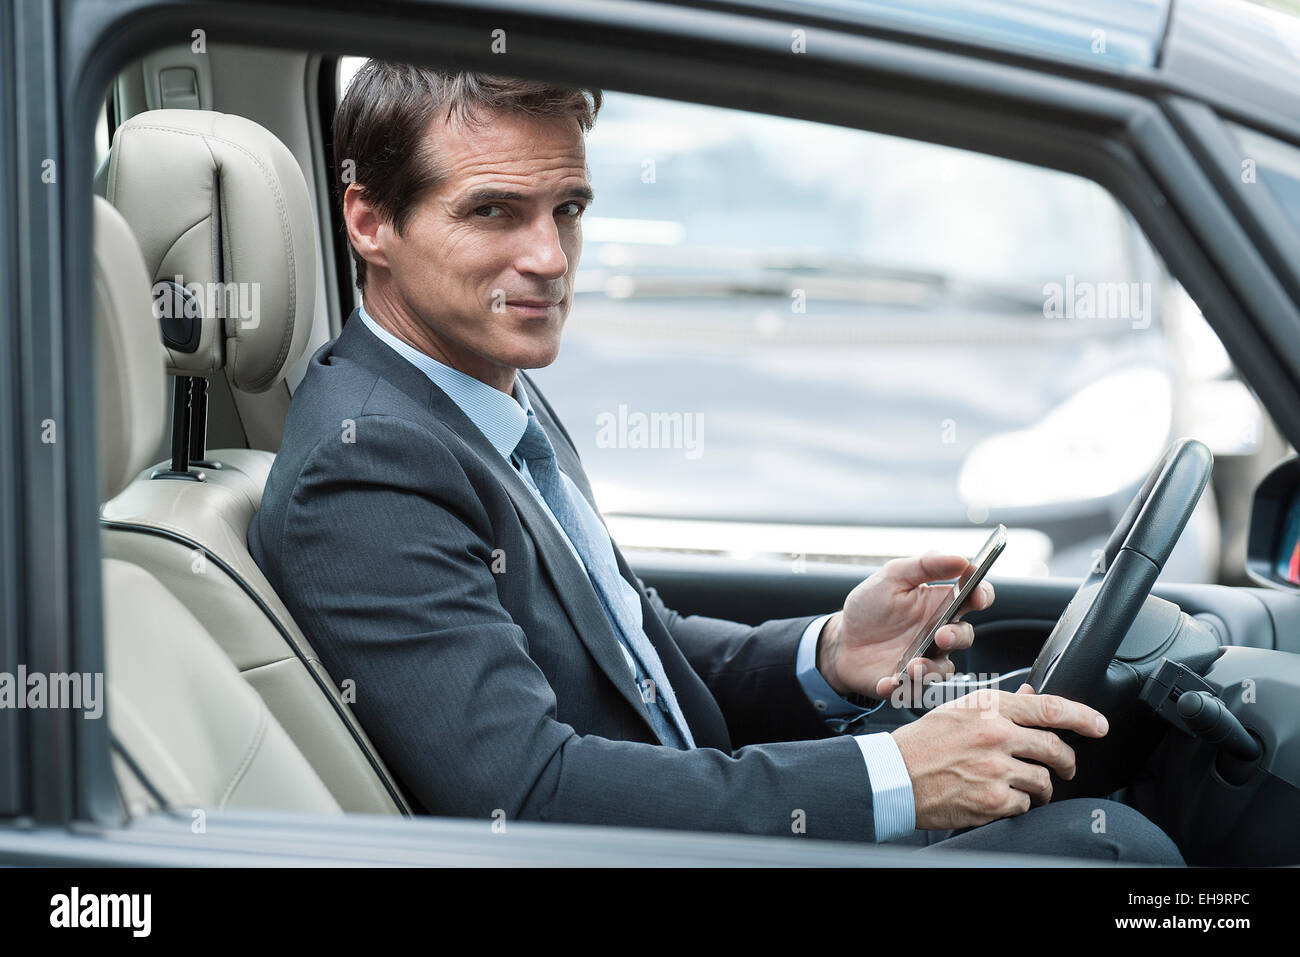 Man texting while driving car - Stock Image